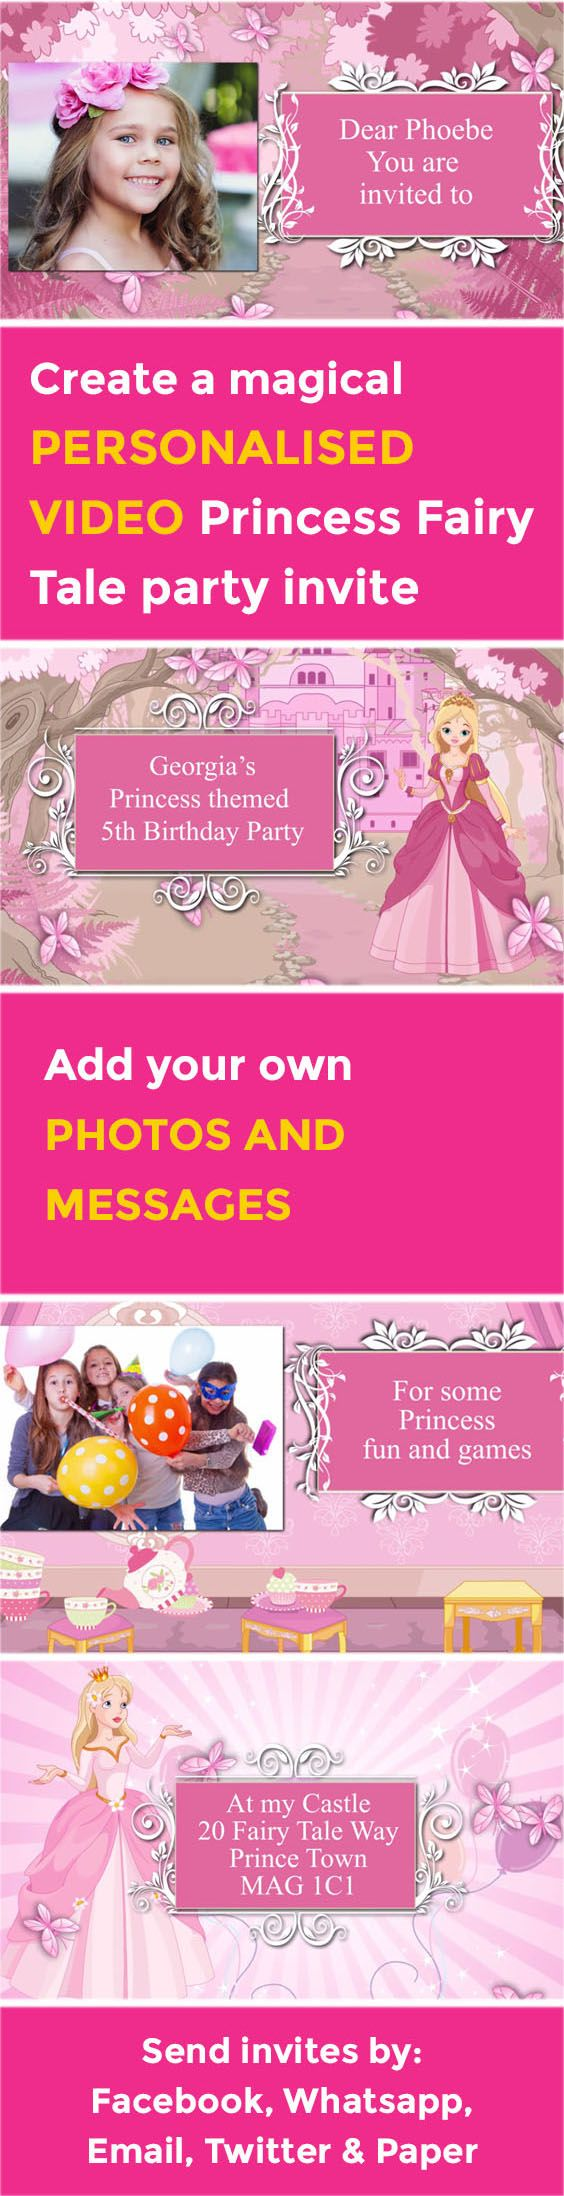 91 best personalised party video invitations images on pinterest create your own magical princess fairy tale video party invitation poshtiger stopboris Gallery